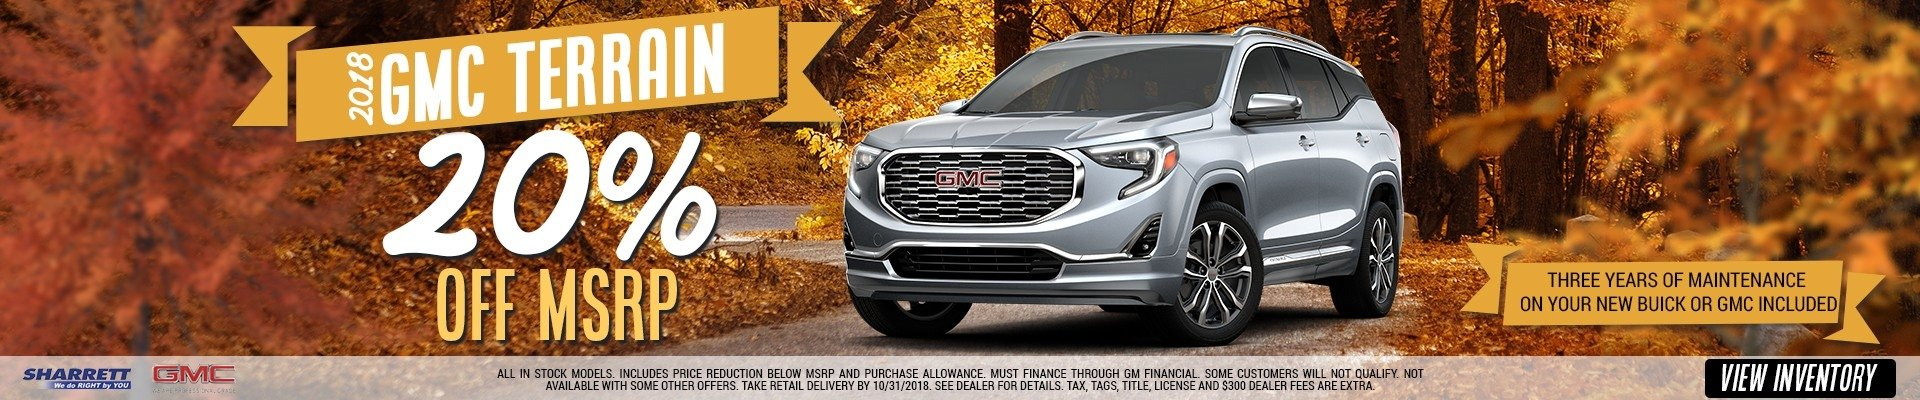 20% Off MSRP on the New 2018 GMC Terrain